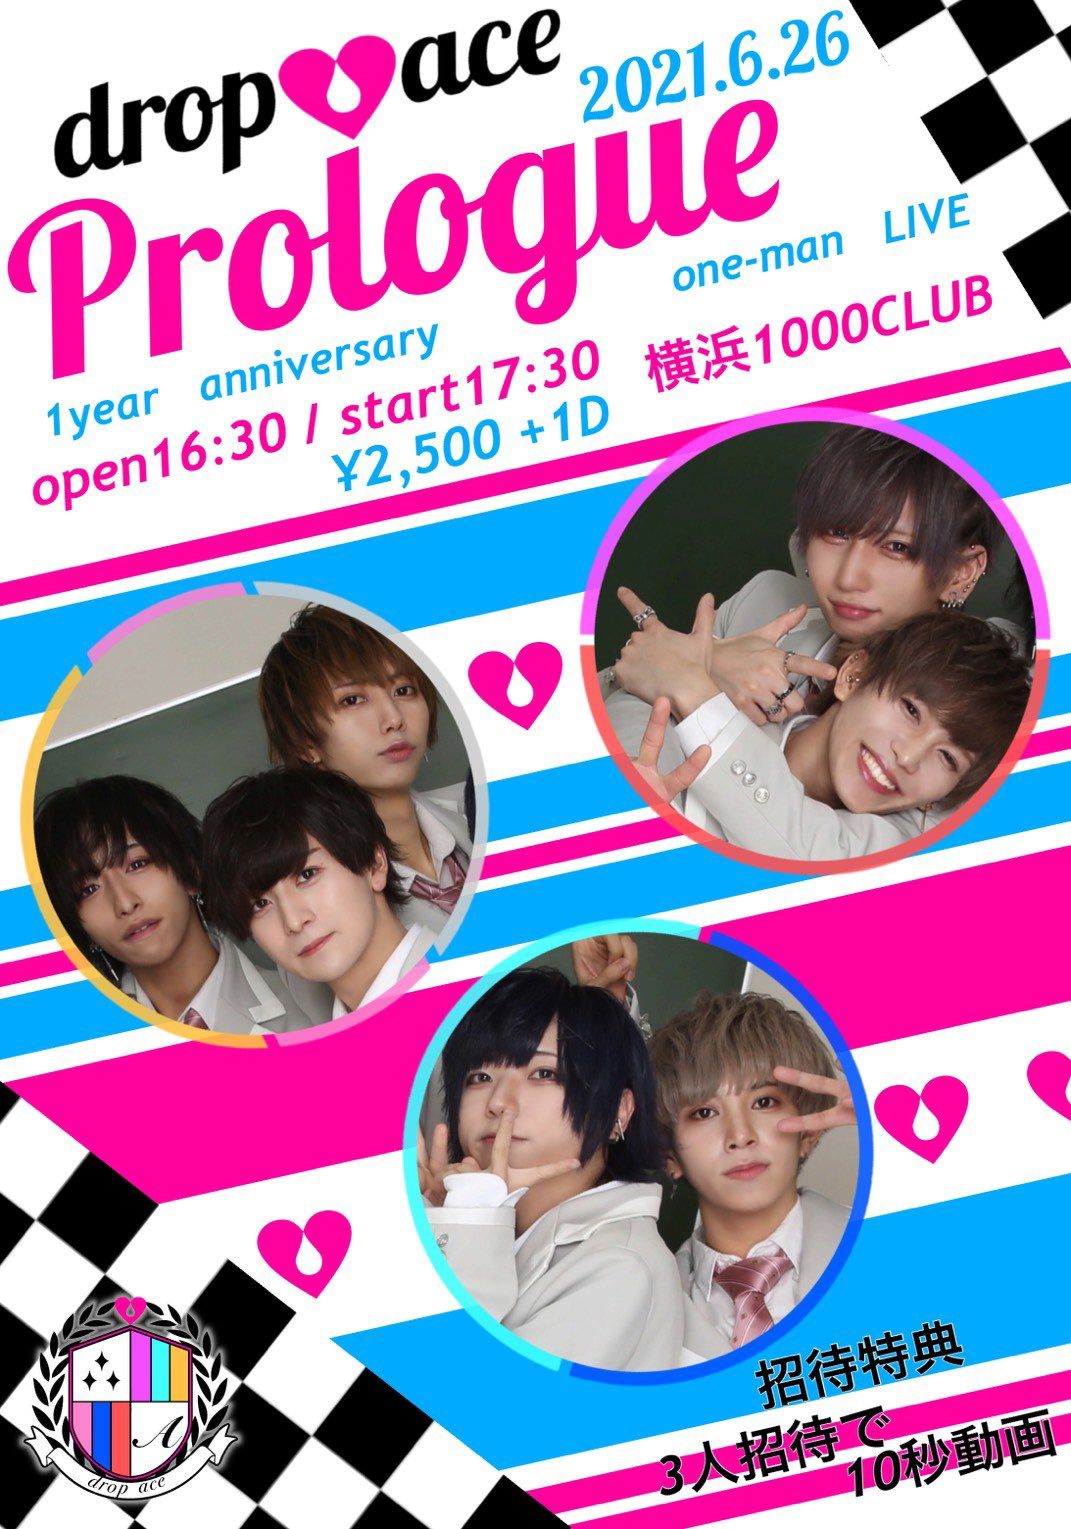 drop♡ace  【1 year anniversary one-man LIVE ~Prologue~】